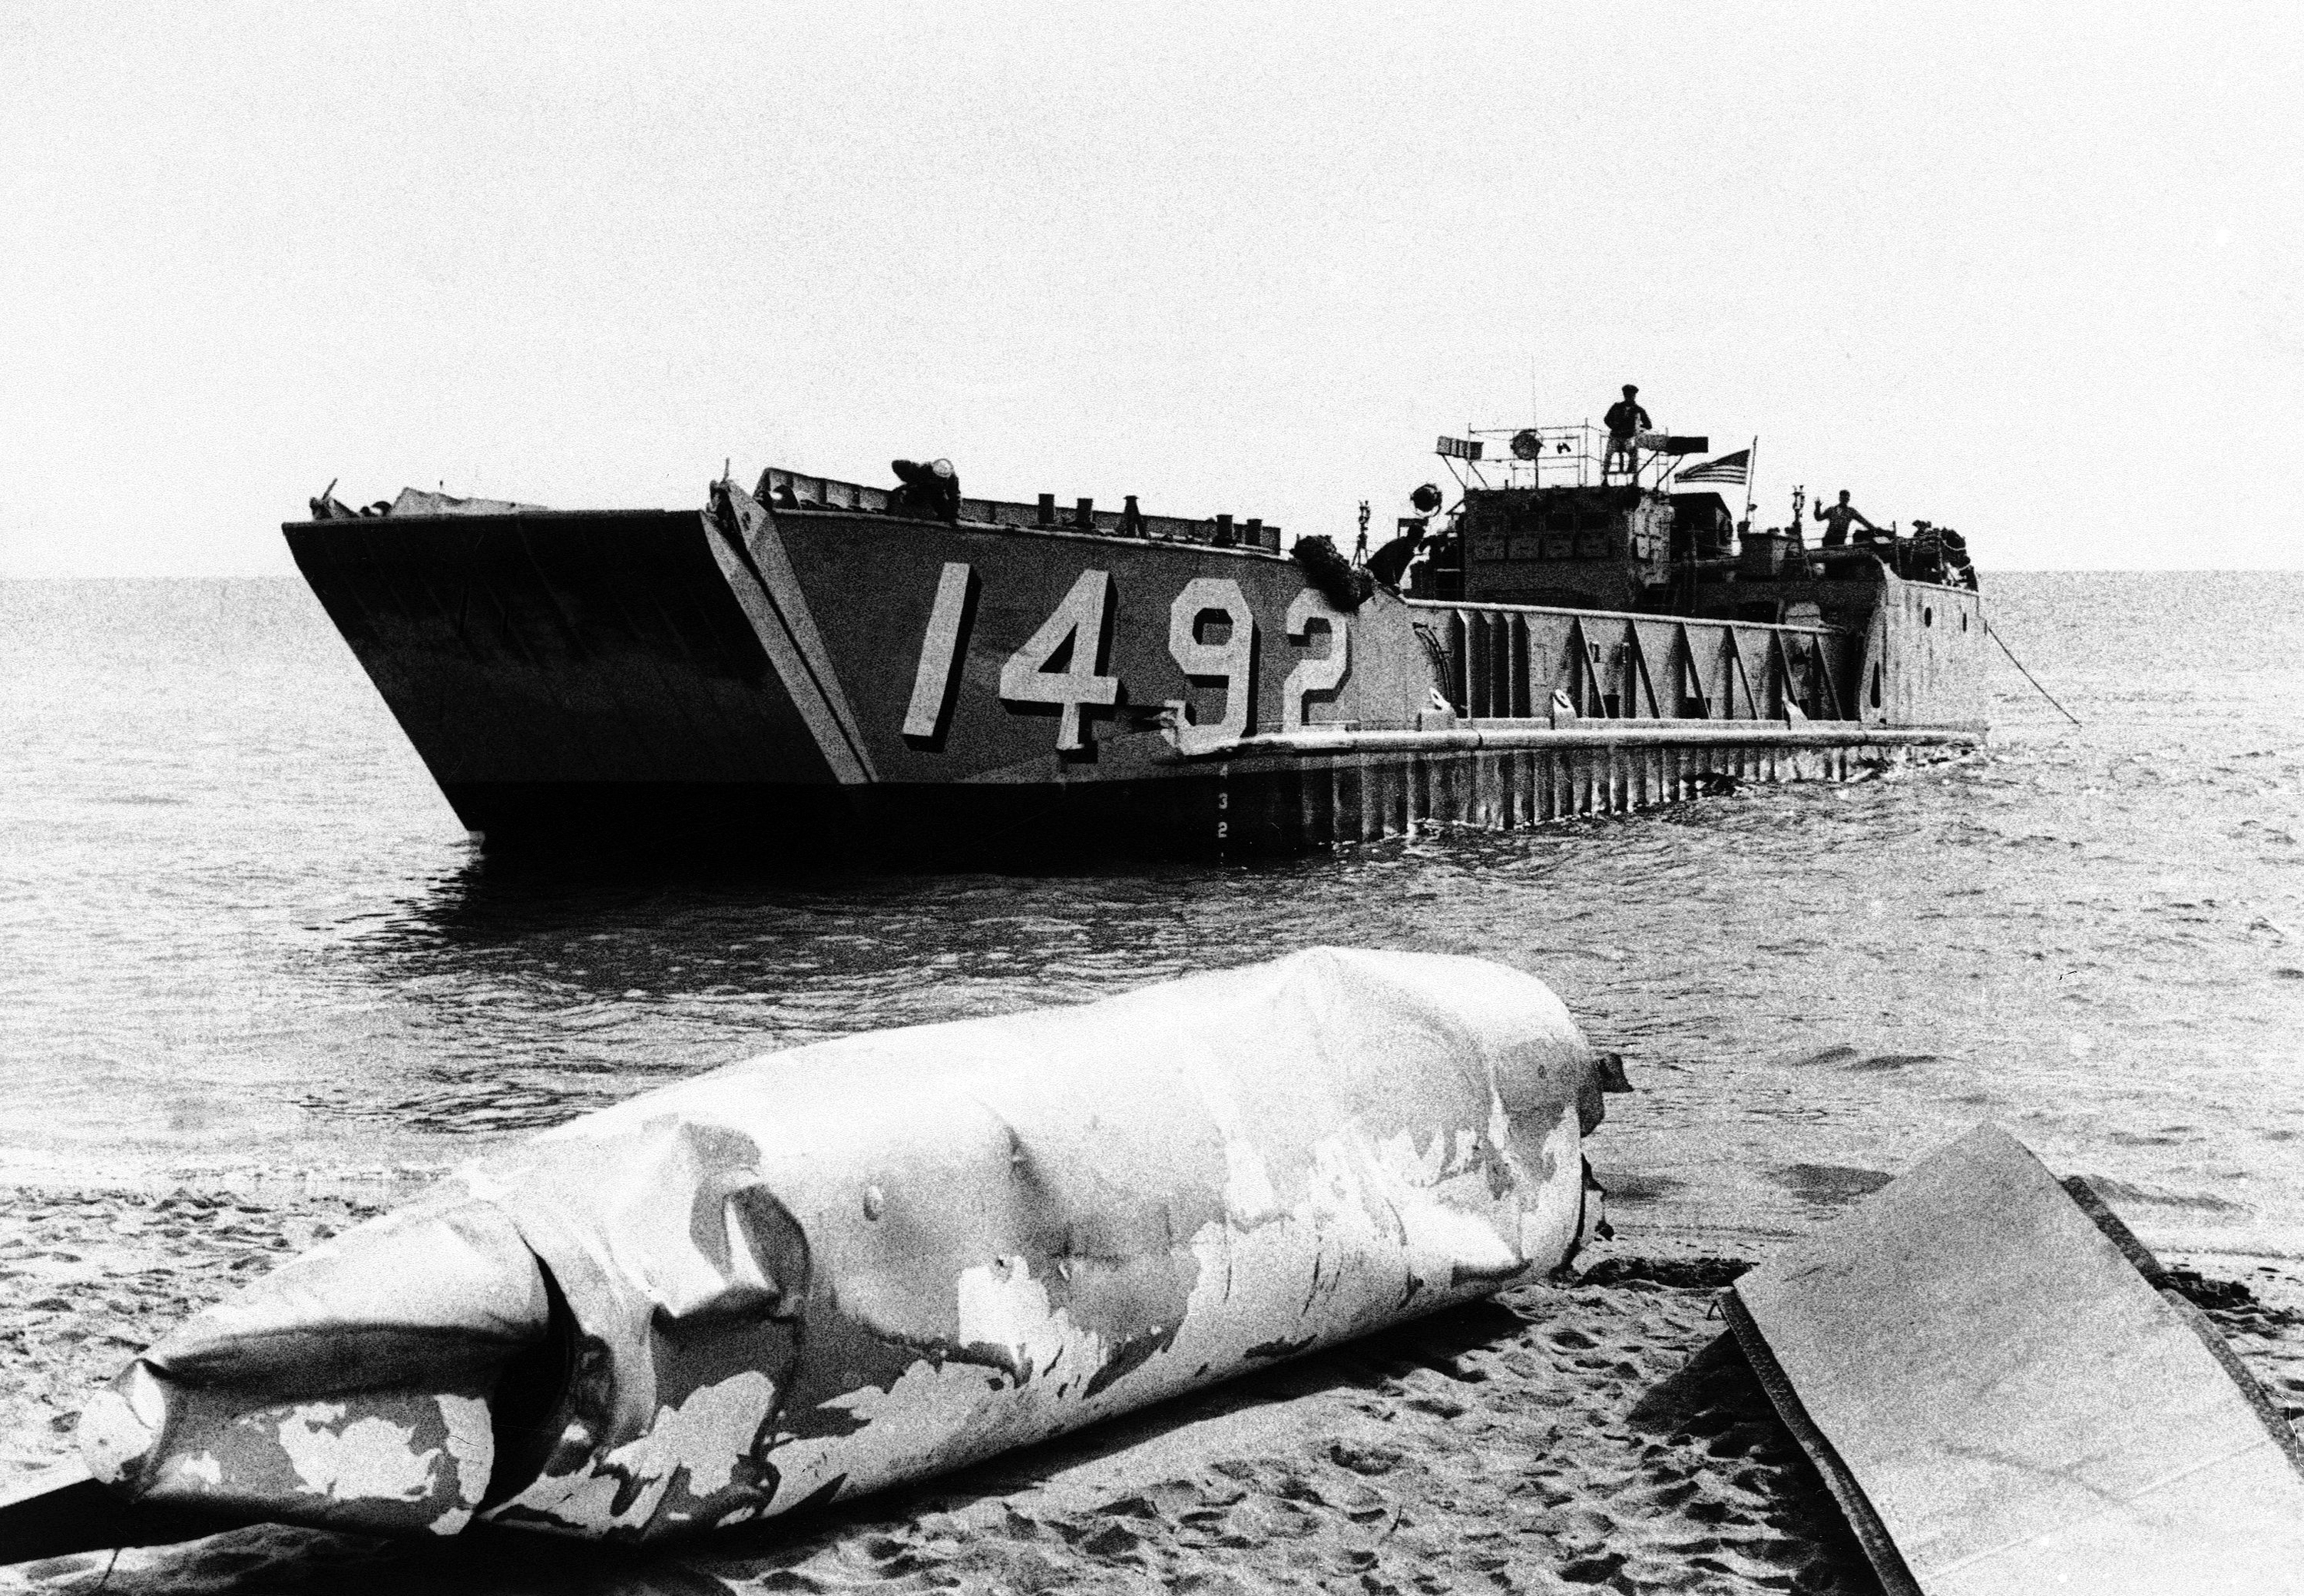 A U.S. landing craft heads back to sea after dropping a battered wing tank recovered from the Mediterranean Sea during a search for missing nuclear weapons after a B-52 crash in Palomares, Spain on Jan. 17, 1966. A new court ruling for the first time could reveal how many veterans faced health issues due to nuclear contamination in the years following the accident. (AP file photo)